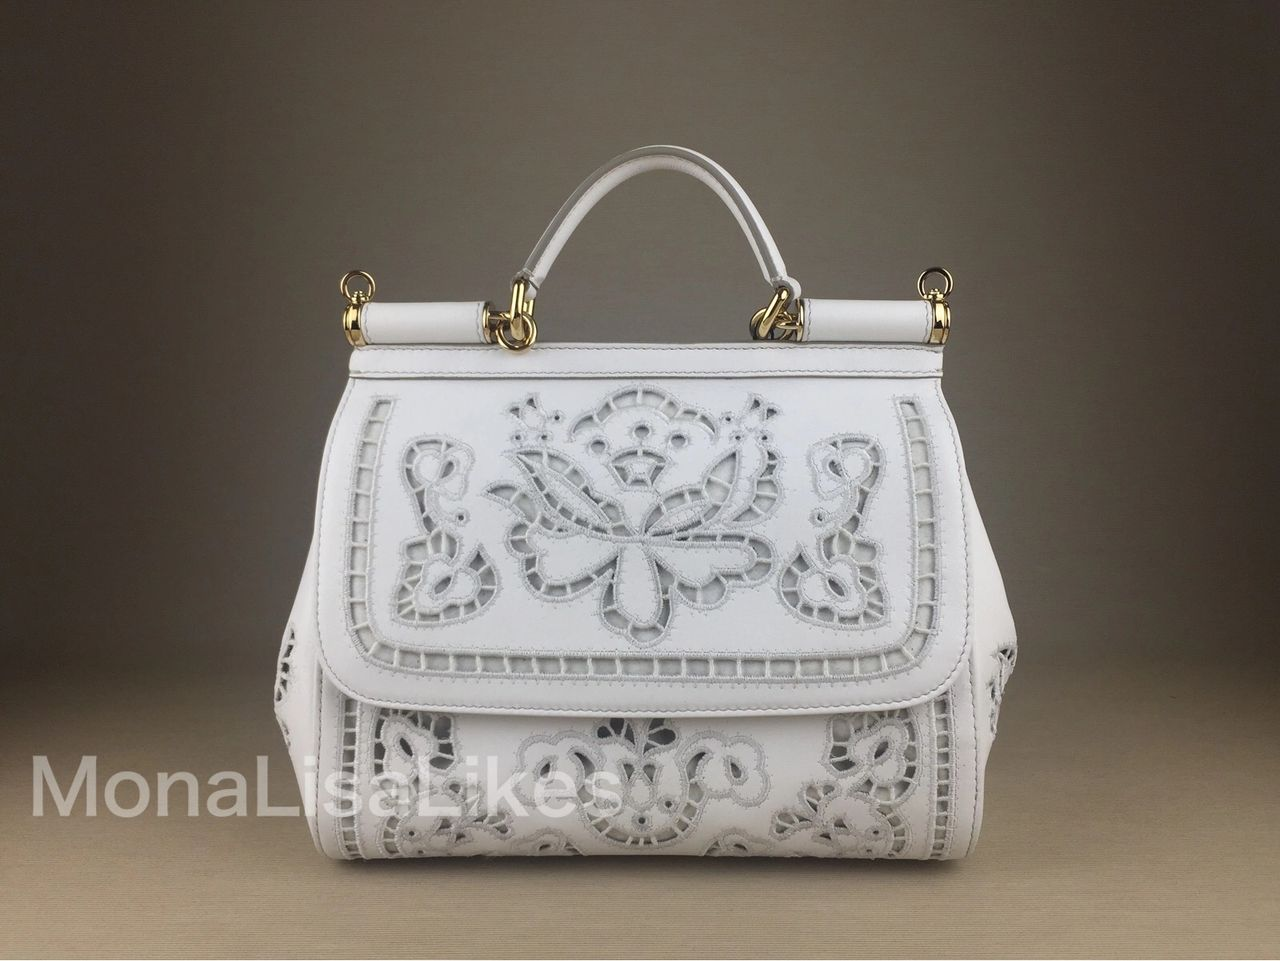 DOLCE & GABBANA Miss Sicily Laser Cut Nappa handbag (called Intaglio in Italian) is a part of regular collections for 3 years in a row, remaining the hottest find